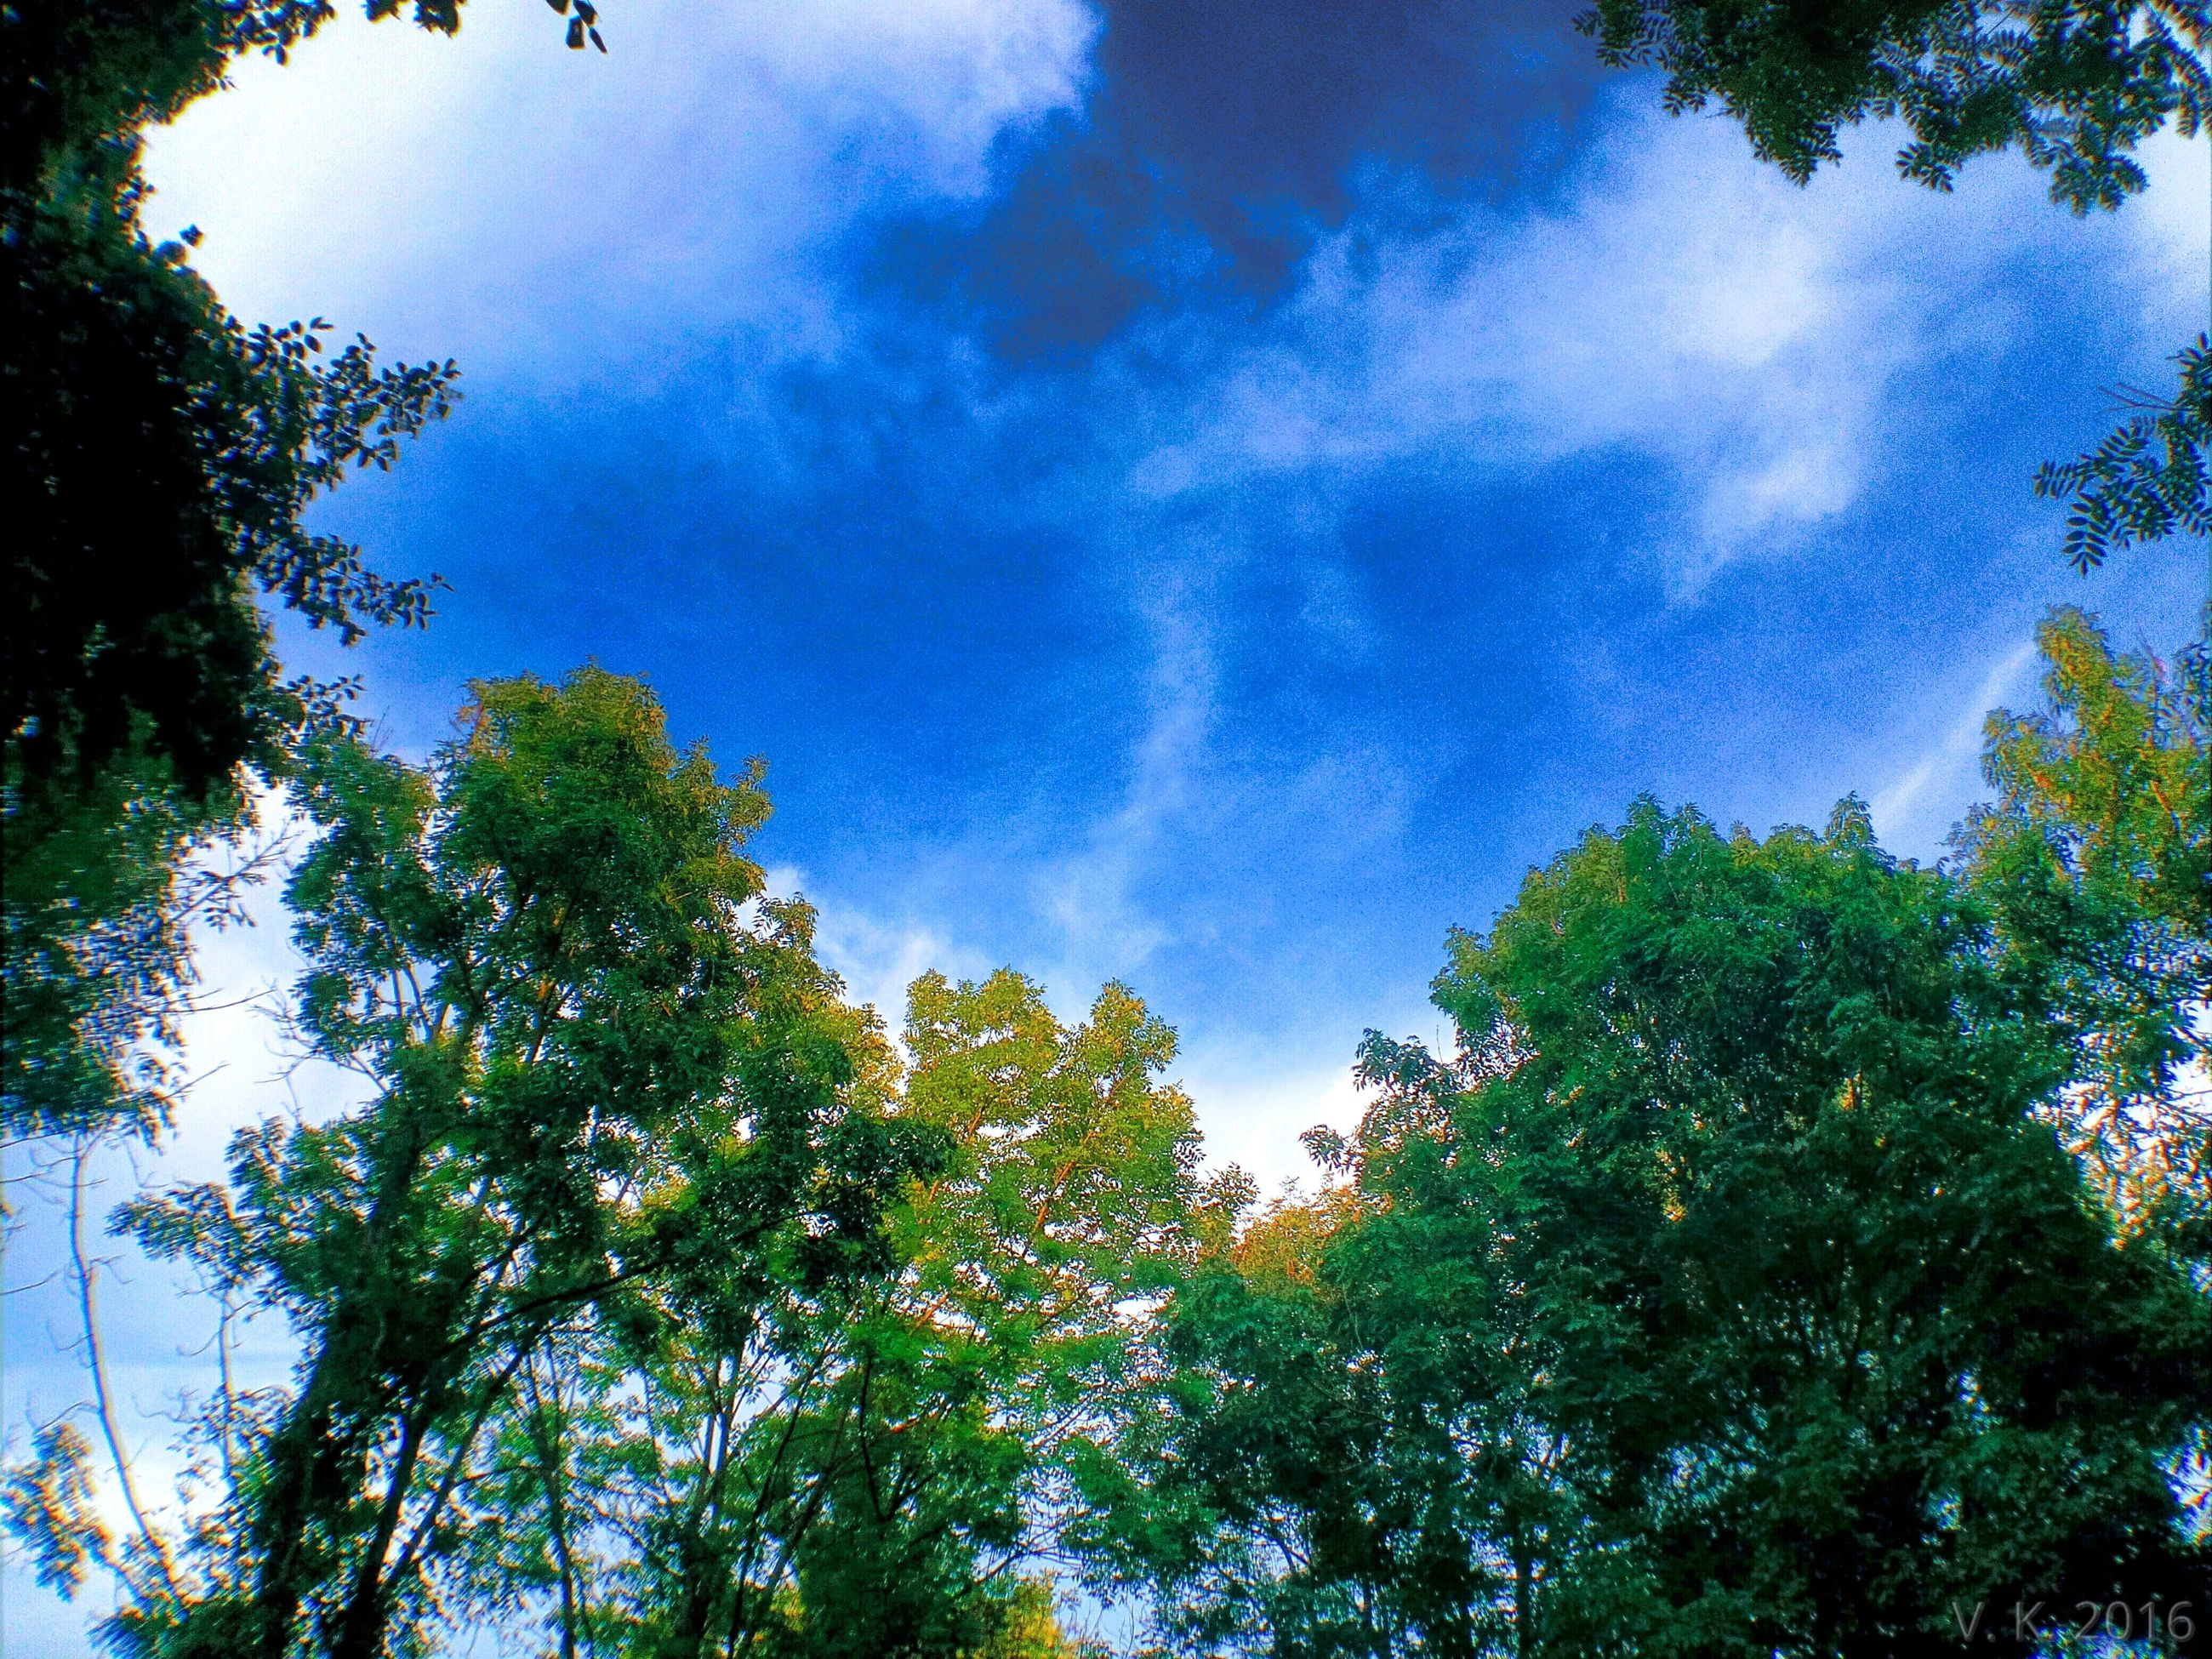 tree, low angle view, growth, blue, sky, branch, scenics, green color, tranquility, green, tranquil scene, beauty in nature, nature, treetop, day, cloud, high section, outdoors, tree top, woodland, non-urban scene, lush foliage, no people, tree canopy, cloud - sky, majestic